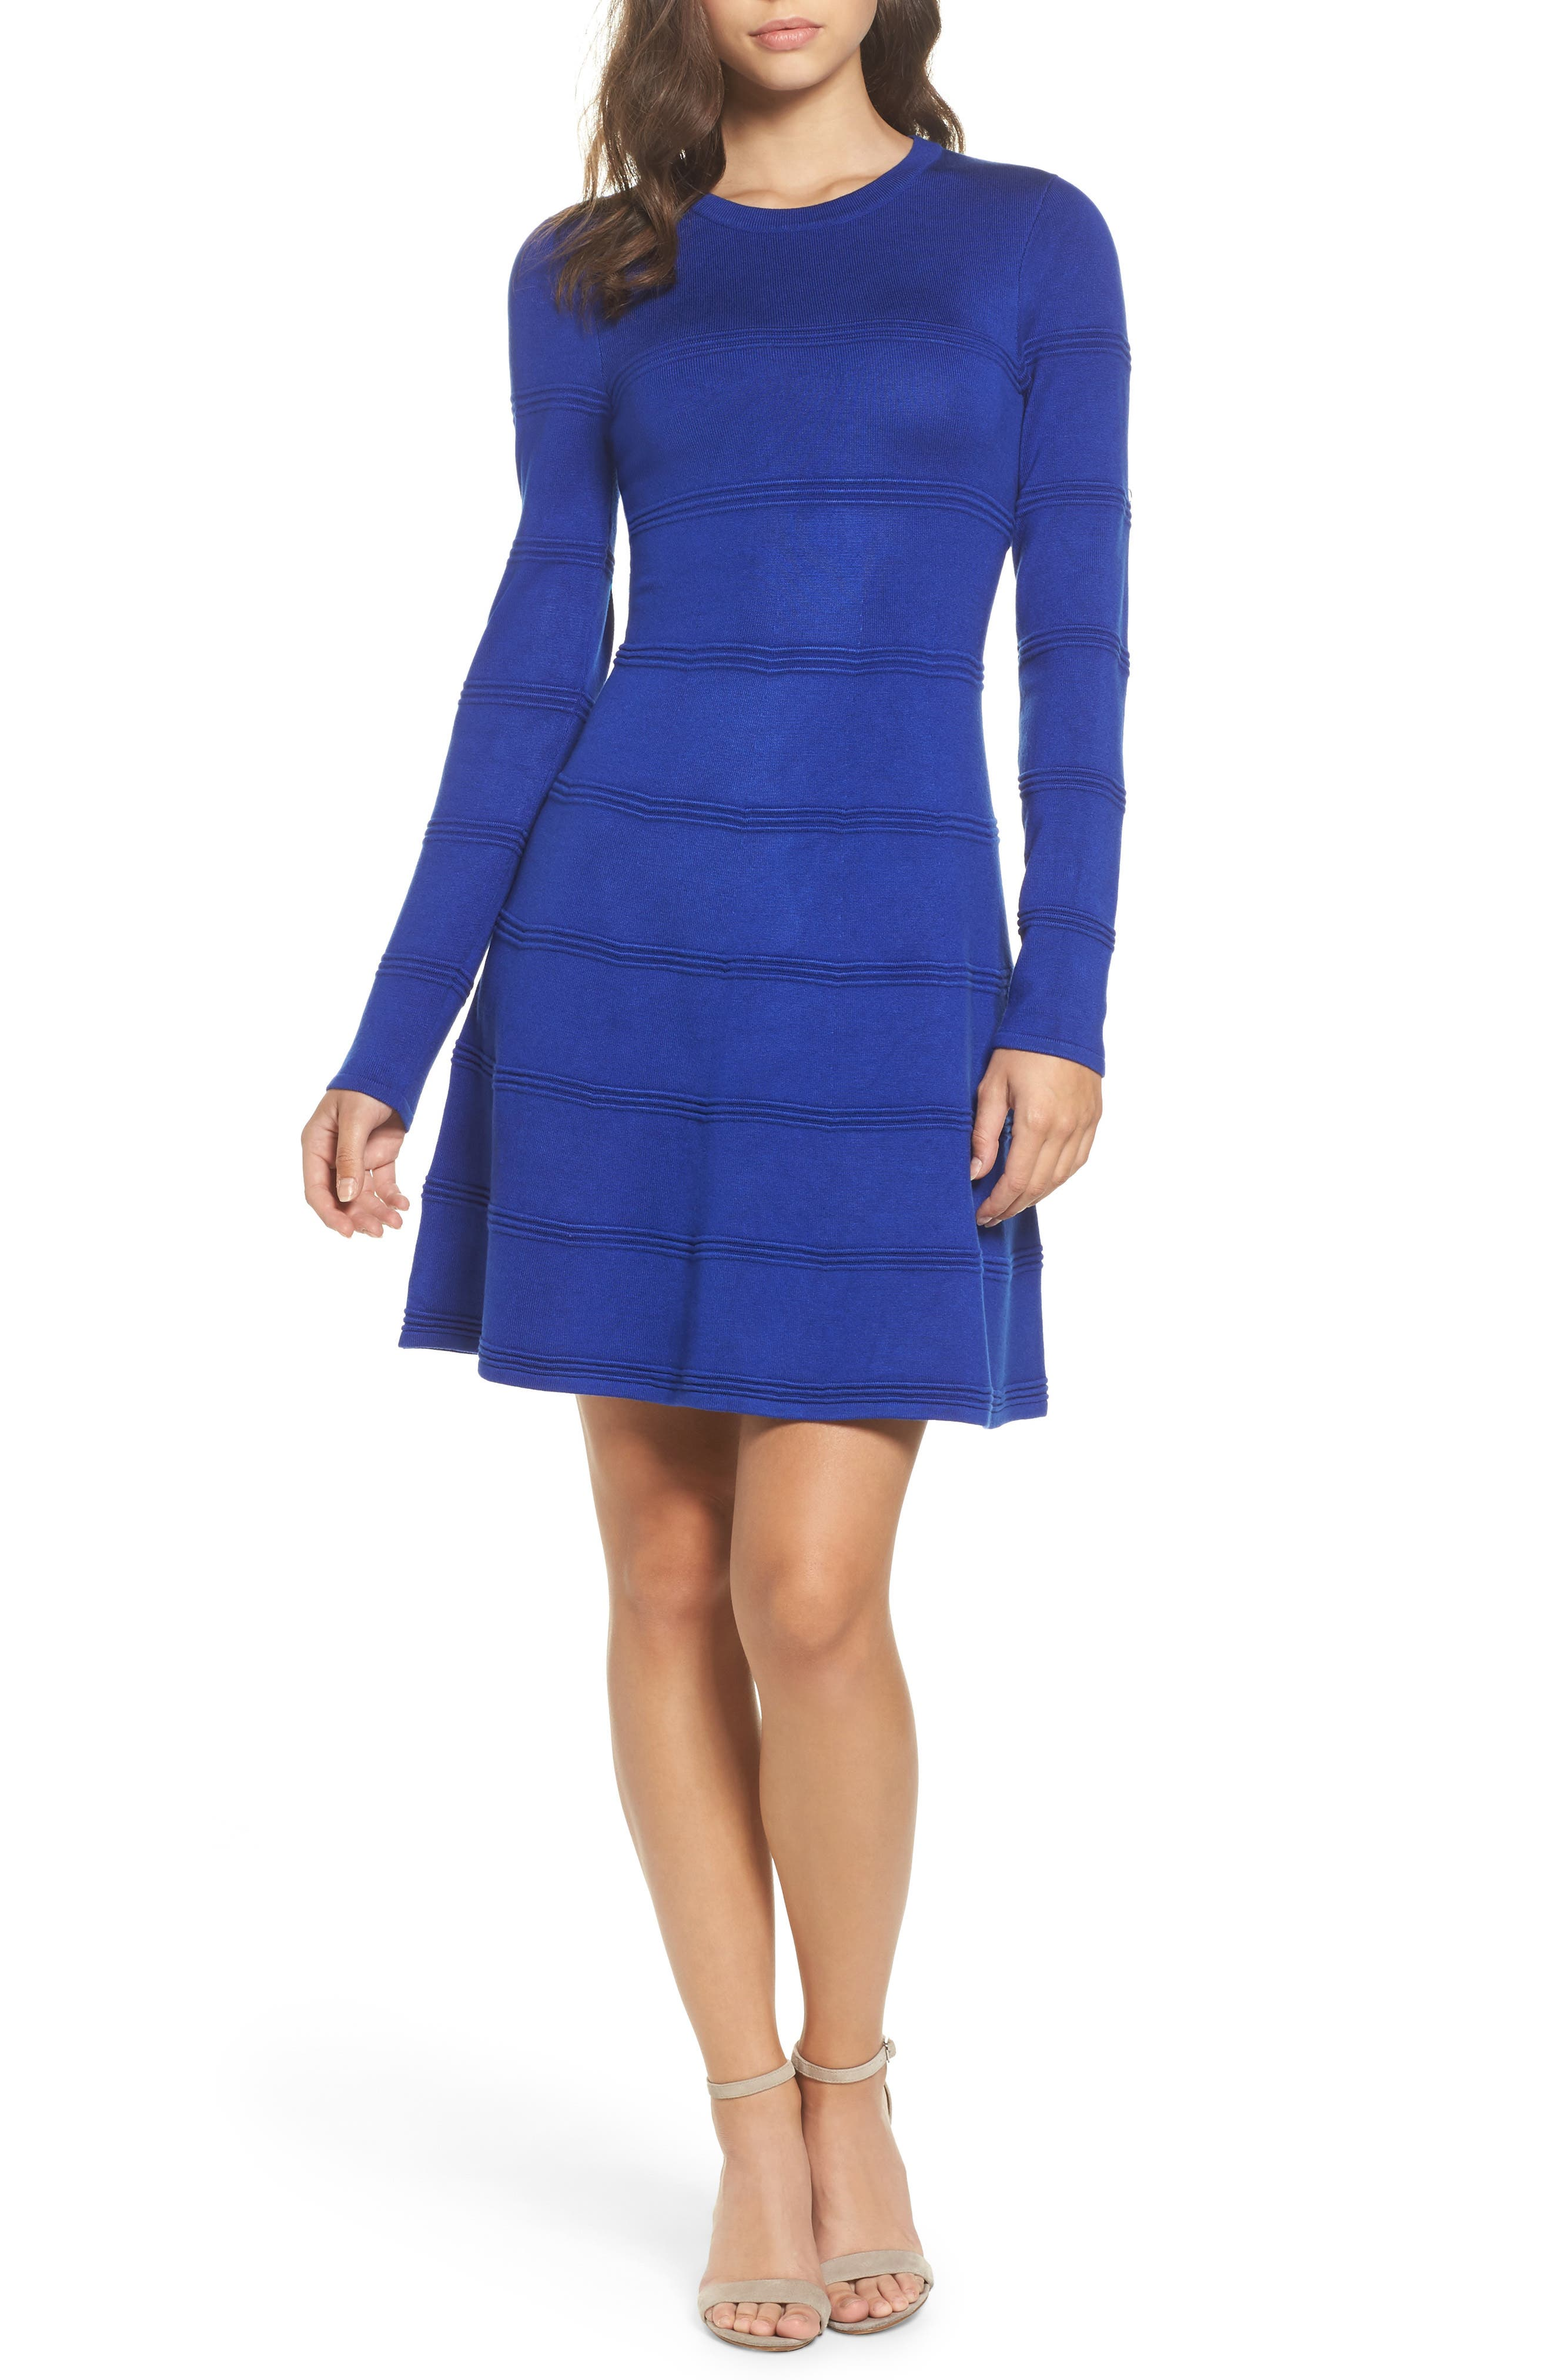 Find a line sweater dress at ShopStyle. Shop the latest collection of a line sweater dress from the most popular stores - all in one place.